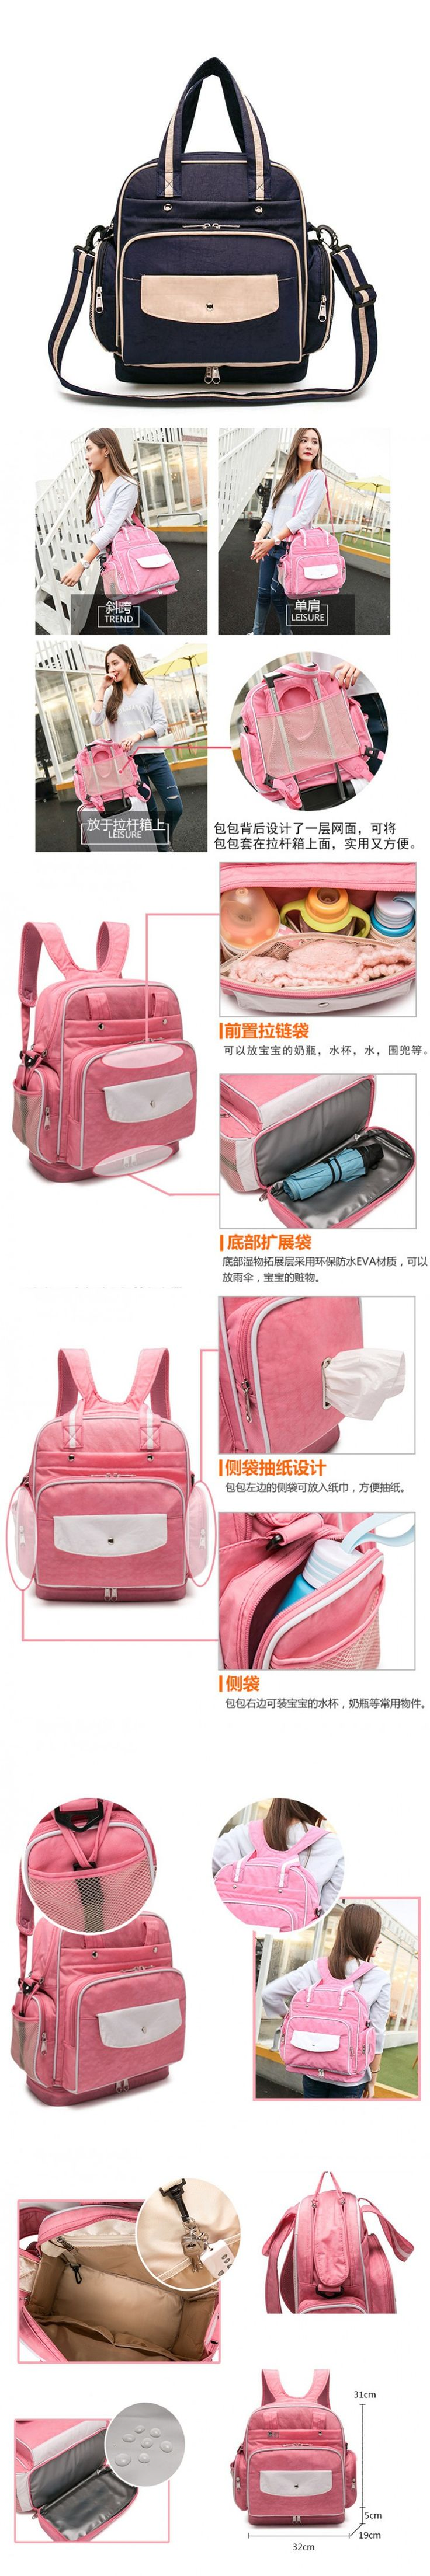 Fashion Multi-functional Mummy Diaper Bag For Mother Backpack Waterproof Women Maternity Nappy Stroller Organizer Baby Care